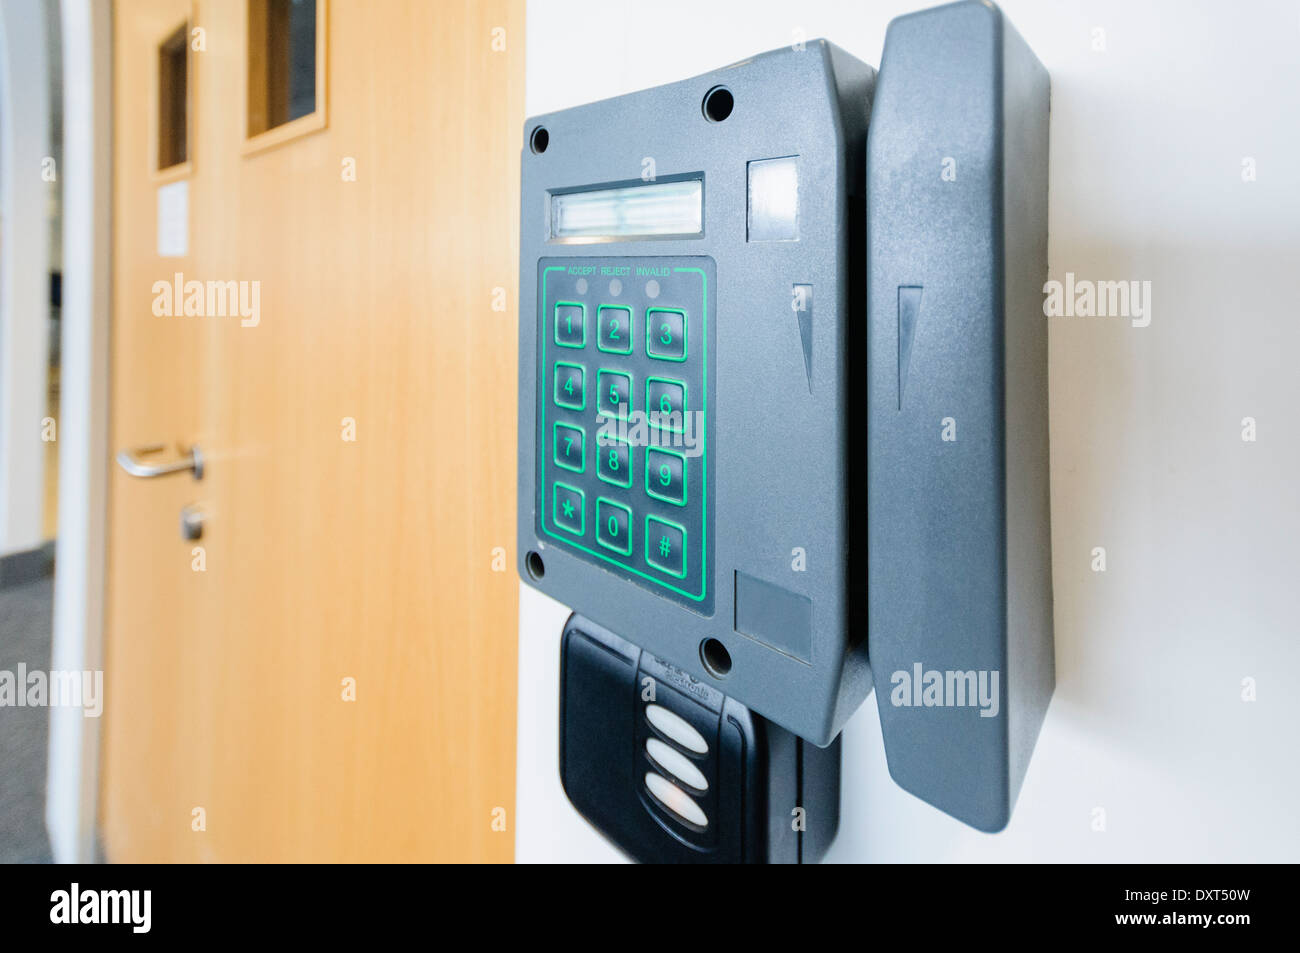 Card reader at an office door to allow access - Stock Image